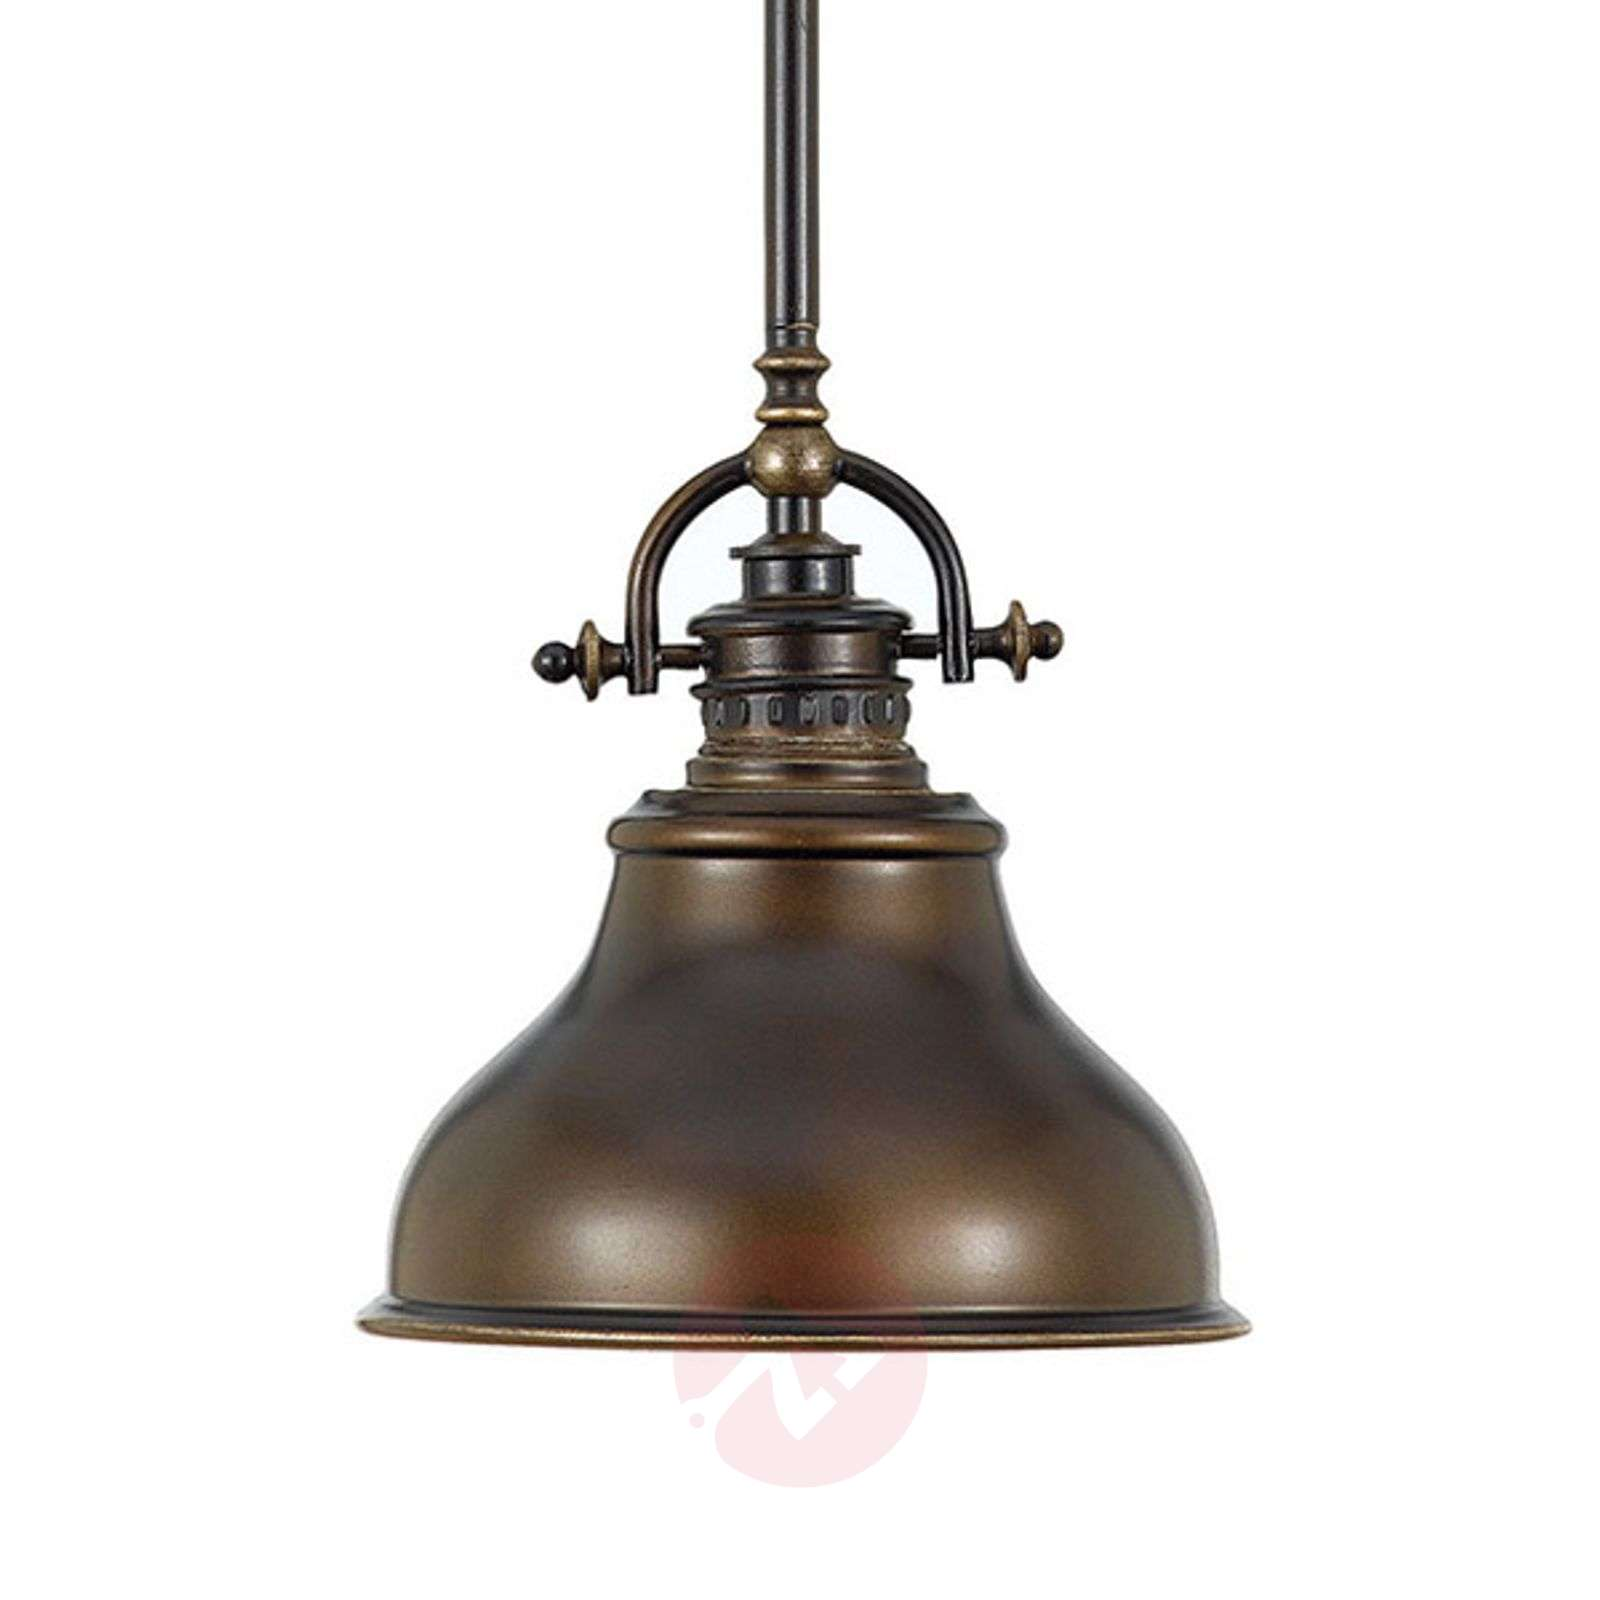 In industri le stijl ontworpen hanglamp emery for Industriele stijl